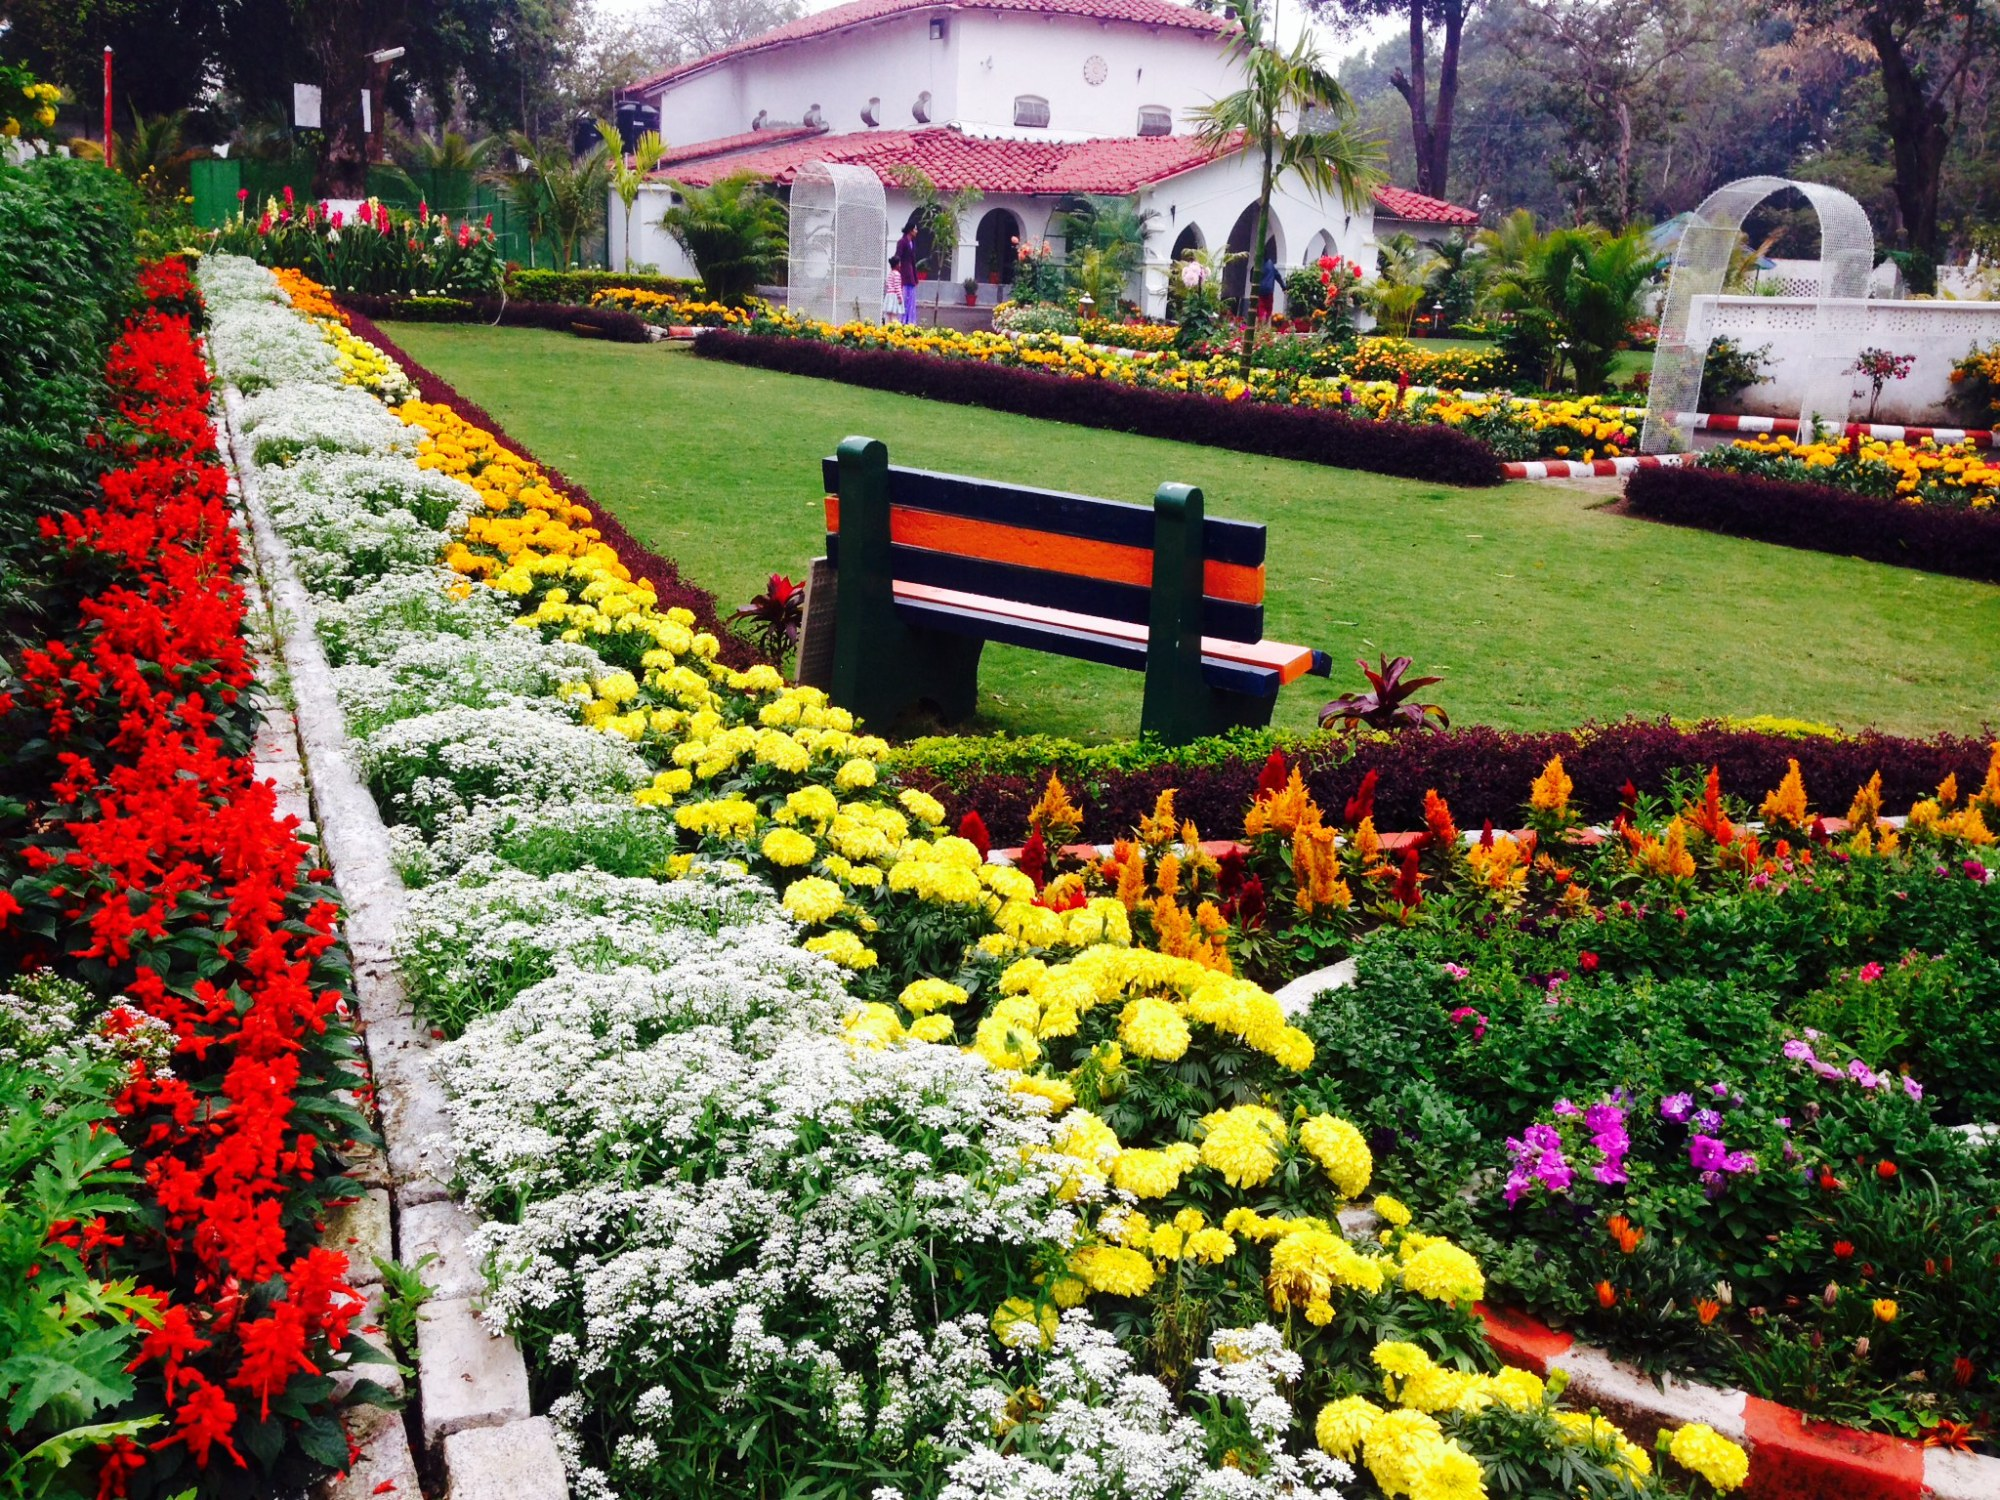 Army cantonment, life in army cant, military hospital awwa complex army facilities dsoi dhaulakuan army clubs army parks awwa works amenities at an Army Cantonment army officer house married accommodations army officers Indian army army wife